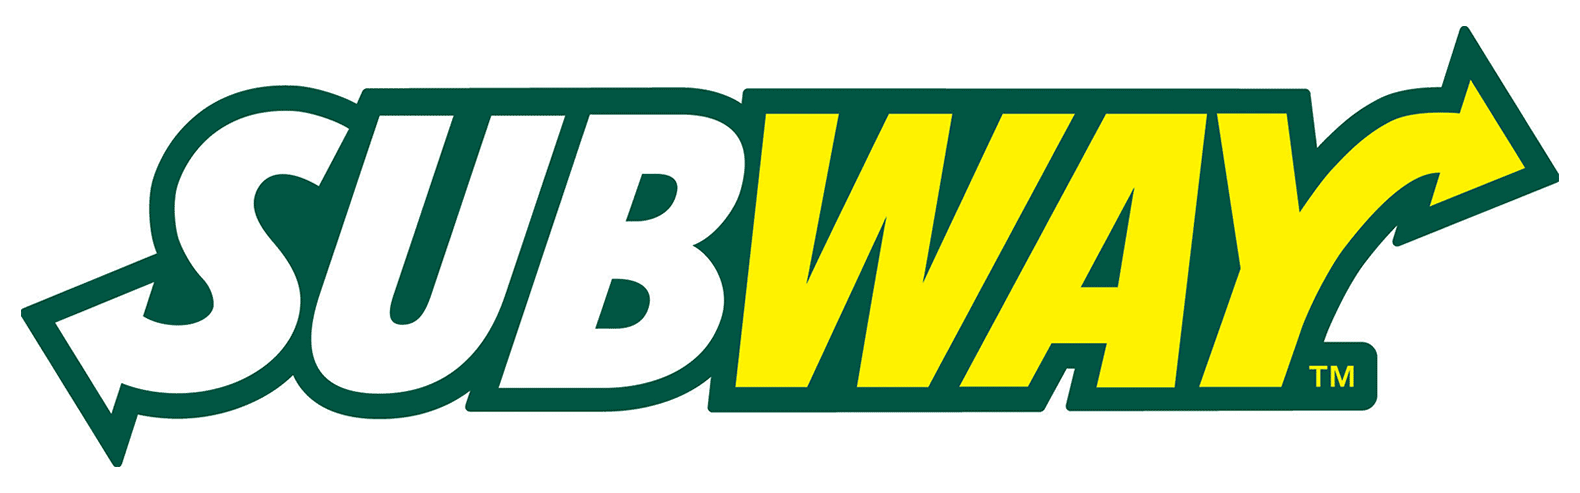 subway-logo-post-2002